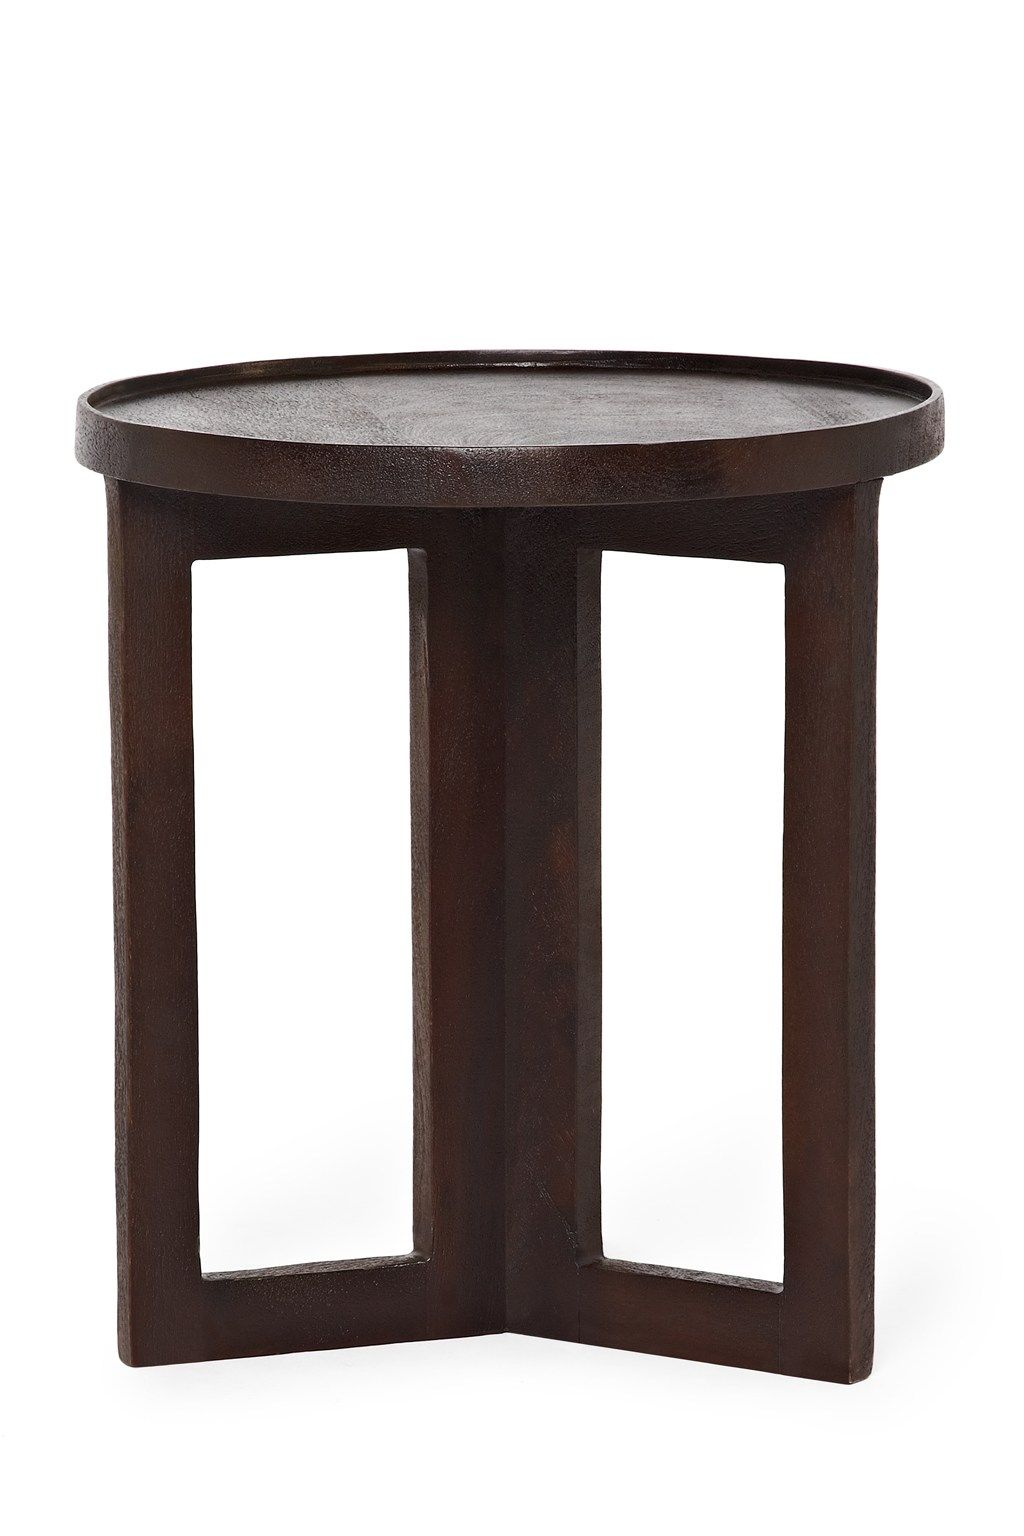 Superior Small Lipped Side Table   Occasional Furniture   French Length  41cm, Width   41cm